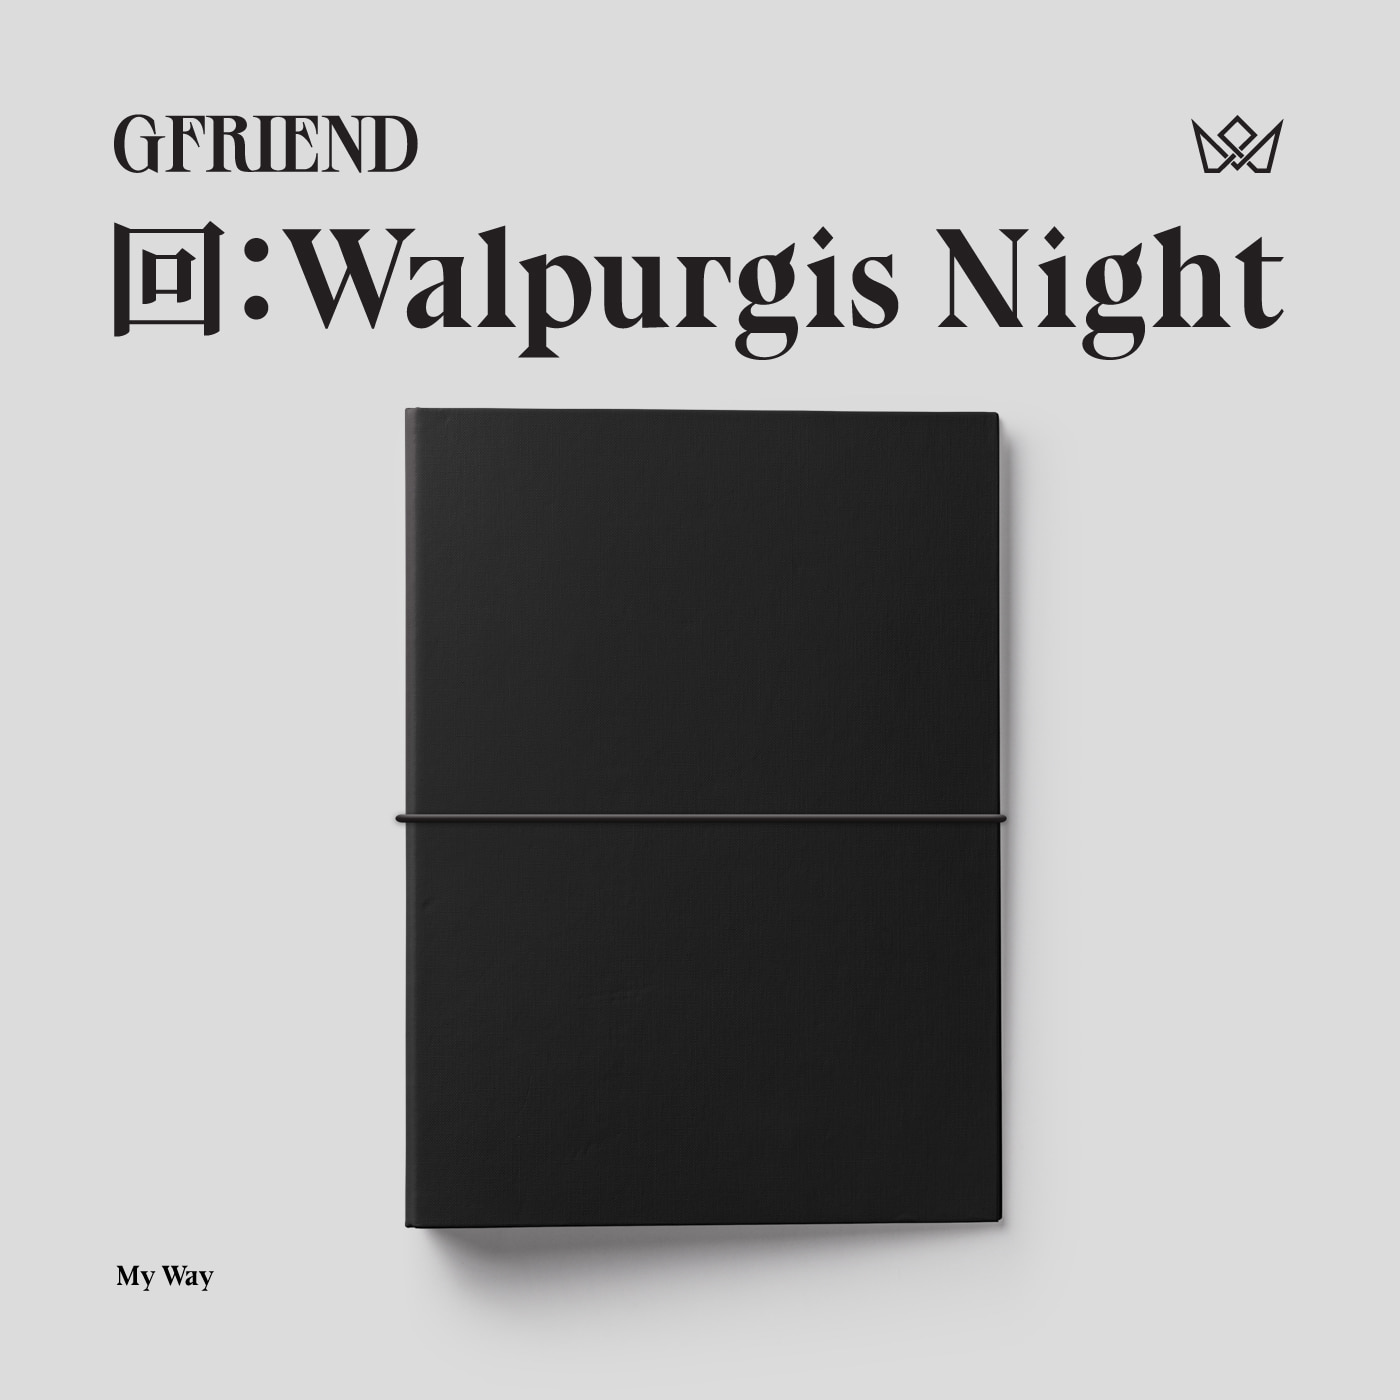 특전 / 여자친구(GFRIEND) - [回:Walpurgis Night] (My Way Ver.)